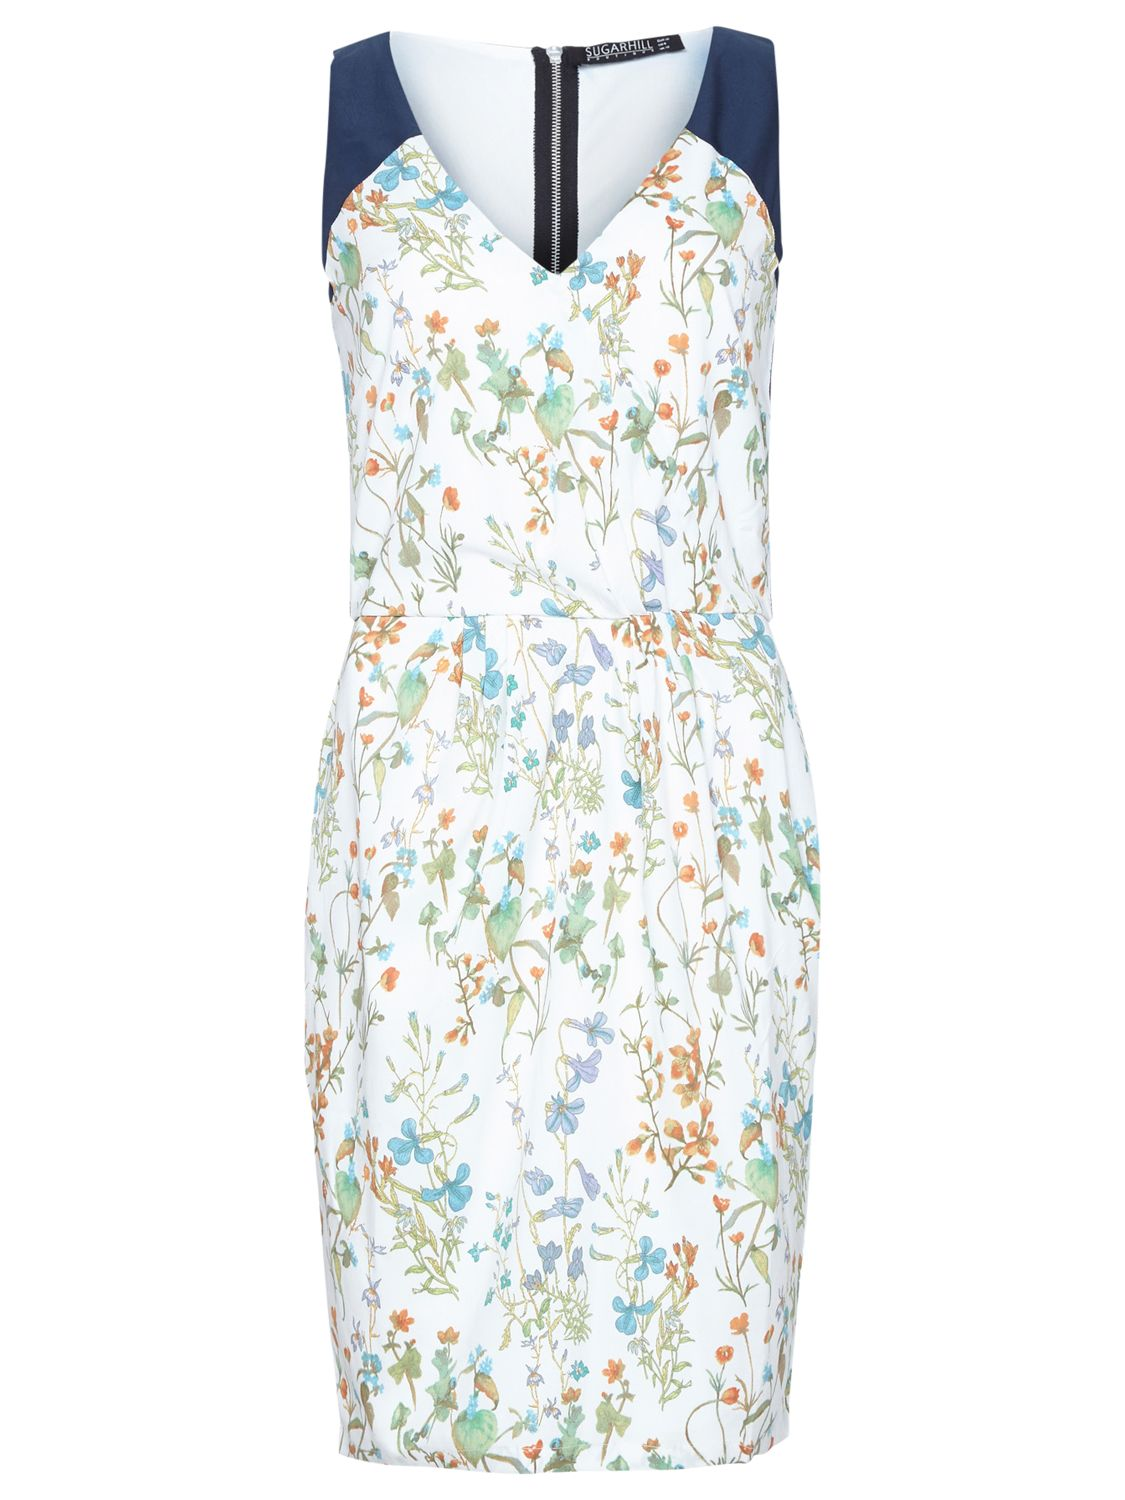 sugarhill boutique botanical dress off white/navy, sugarhill, boutique, botanical, dress, white/navy, sugarhill boutique, 12|14|10|8, clearance, womenswear offers, womens dresses offers, women, womens dresses, special offers, 1567079